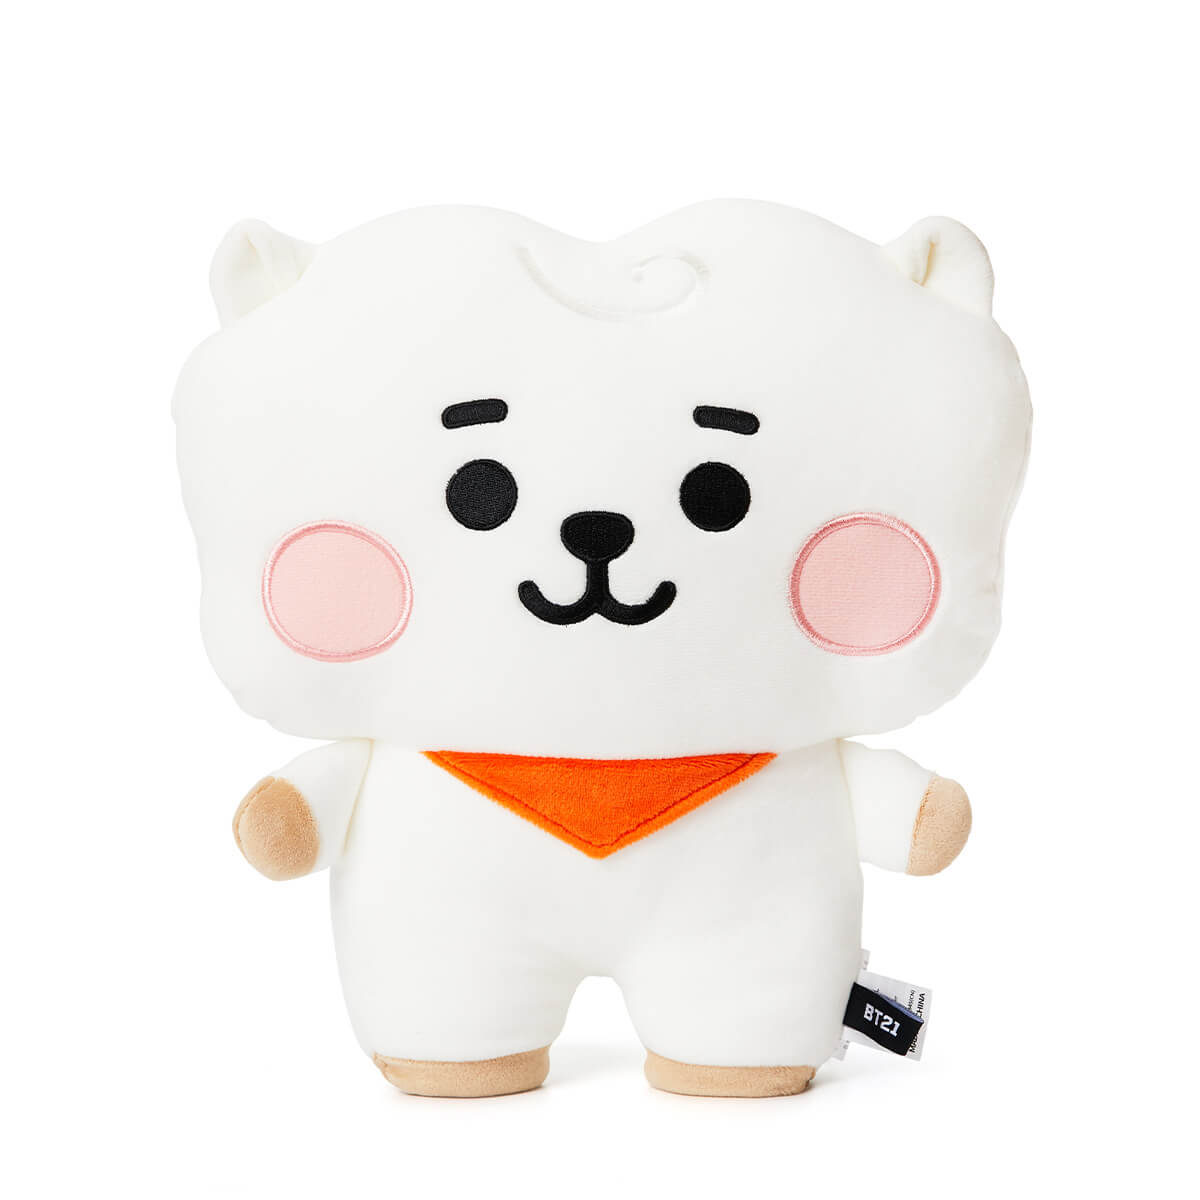 BT21 RJ BABY Hug Me Cushion